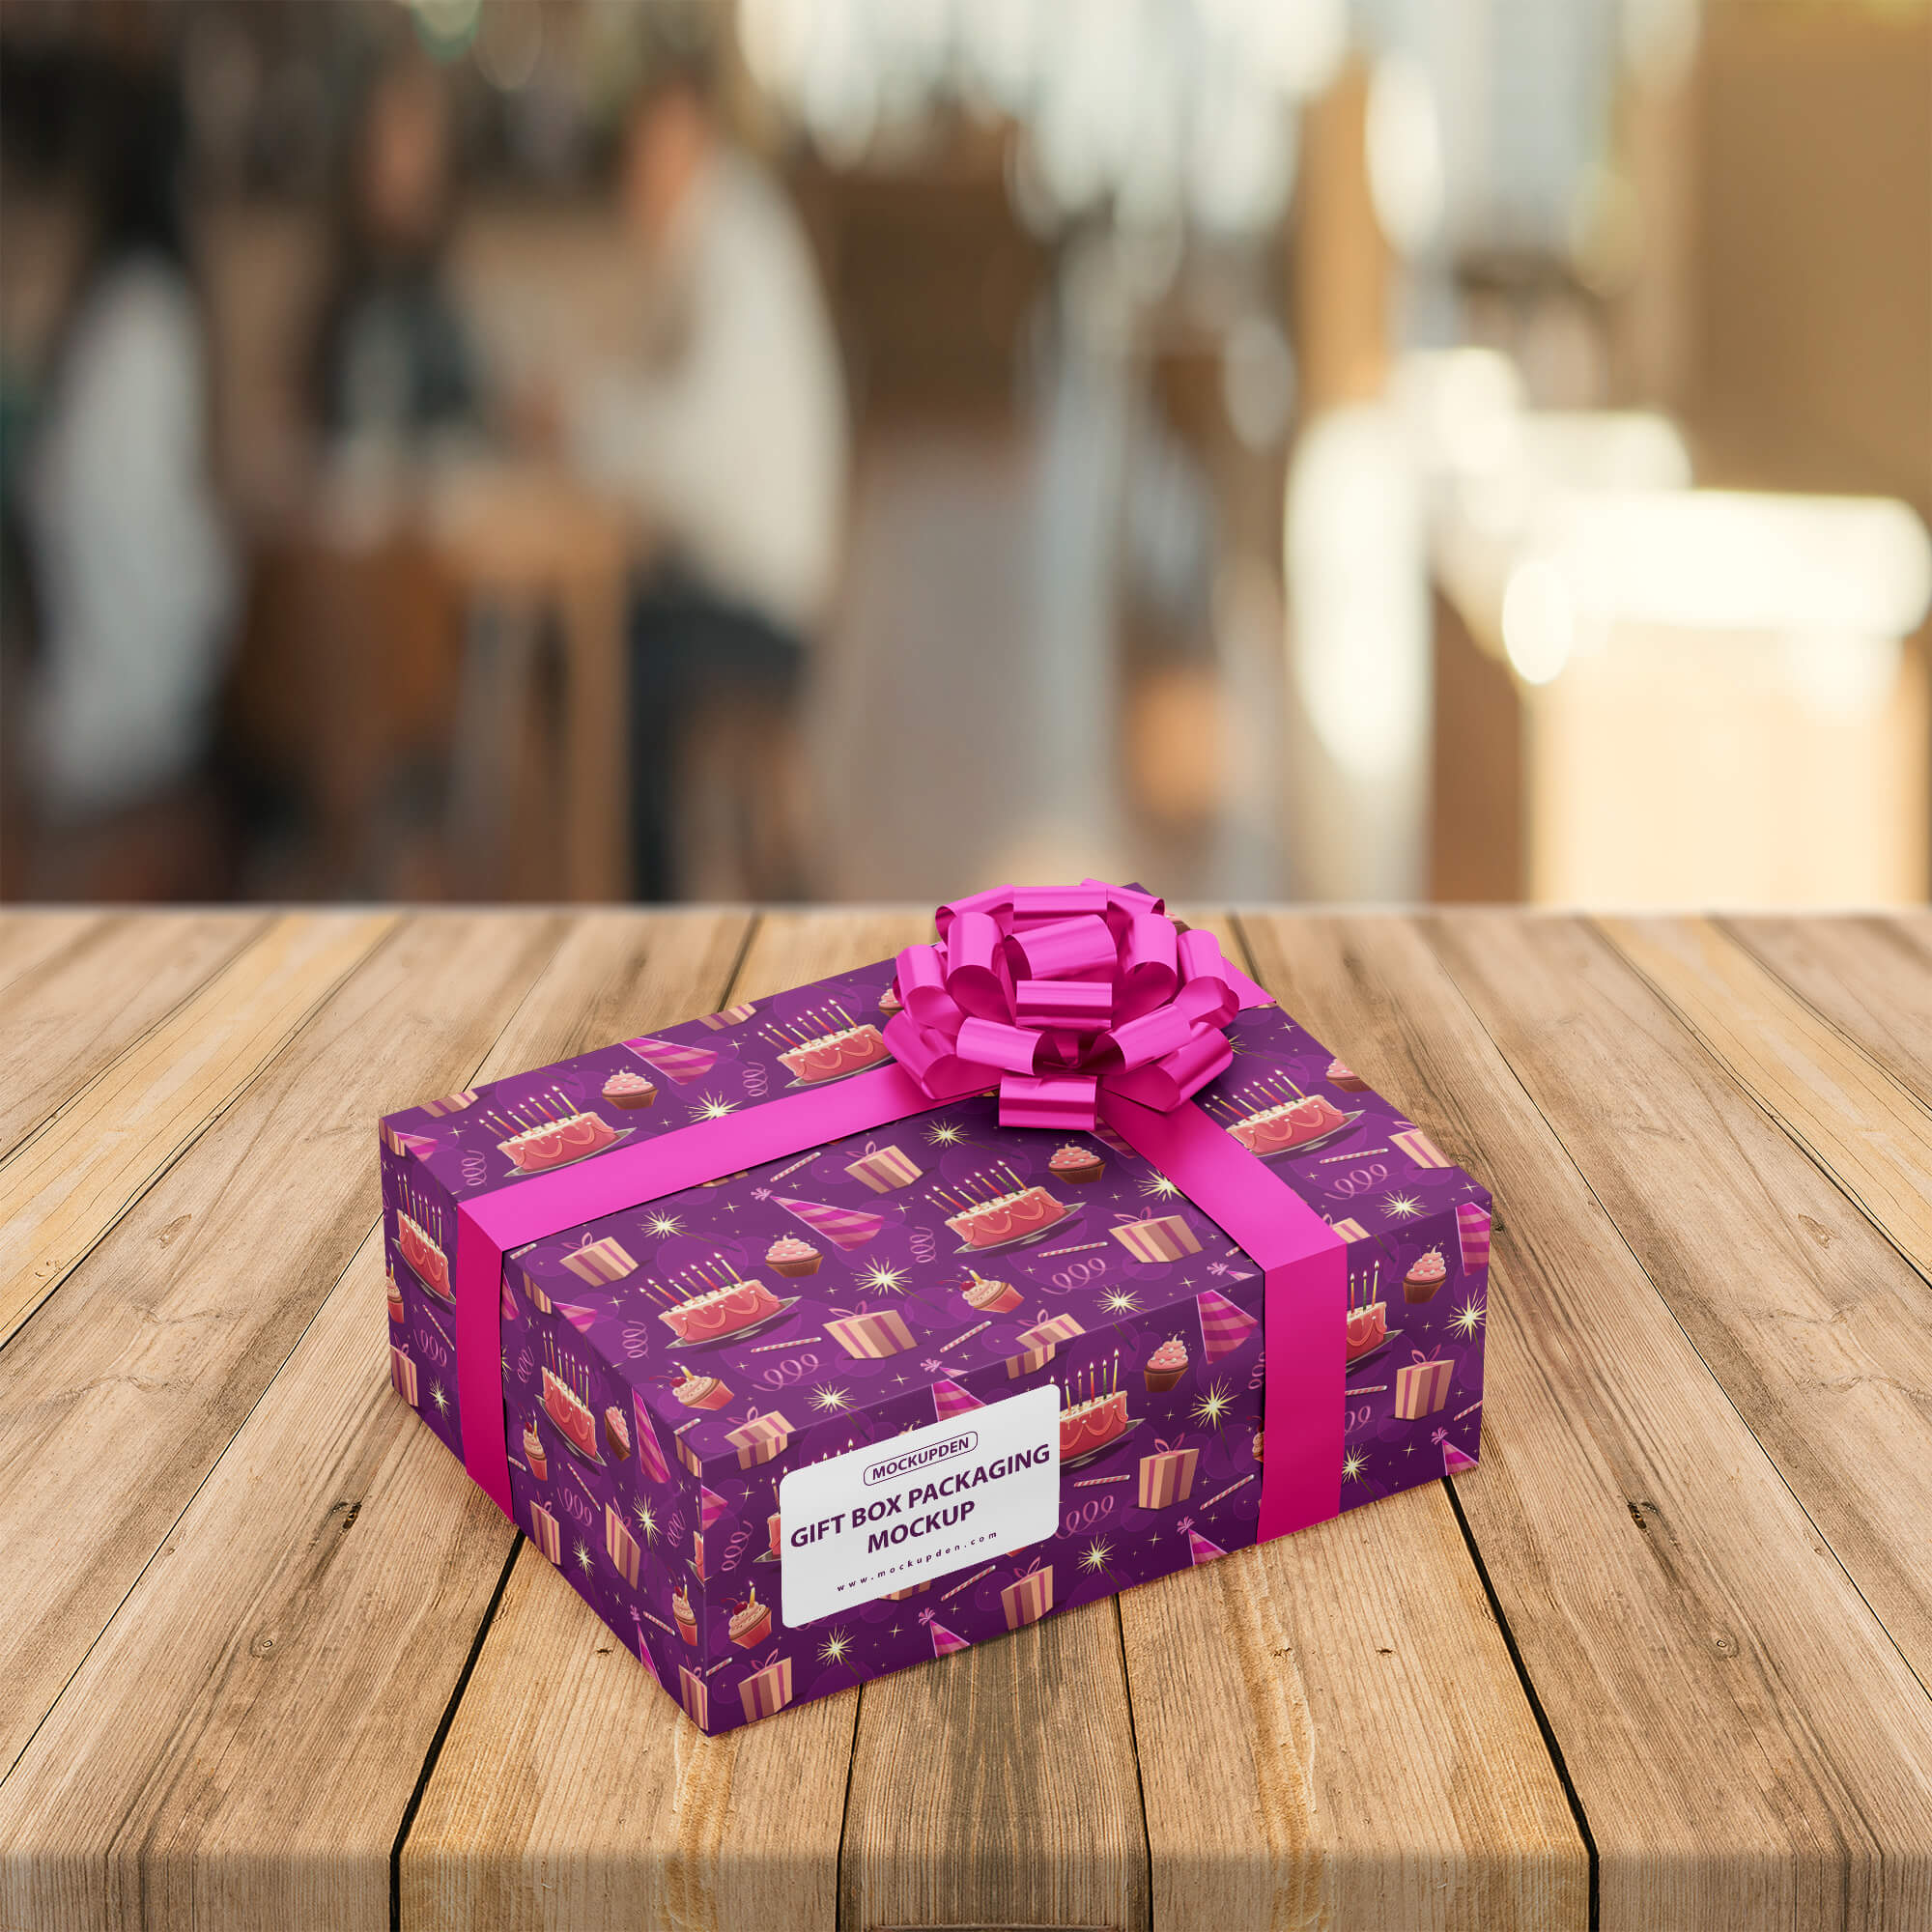 Free Gift Box Packaging Mockup PSD Template